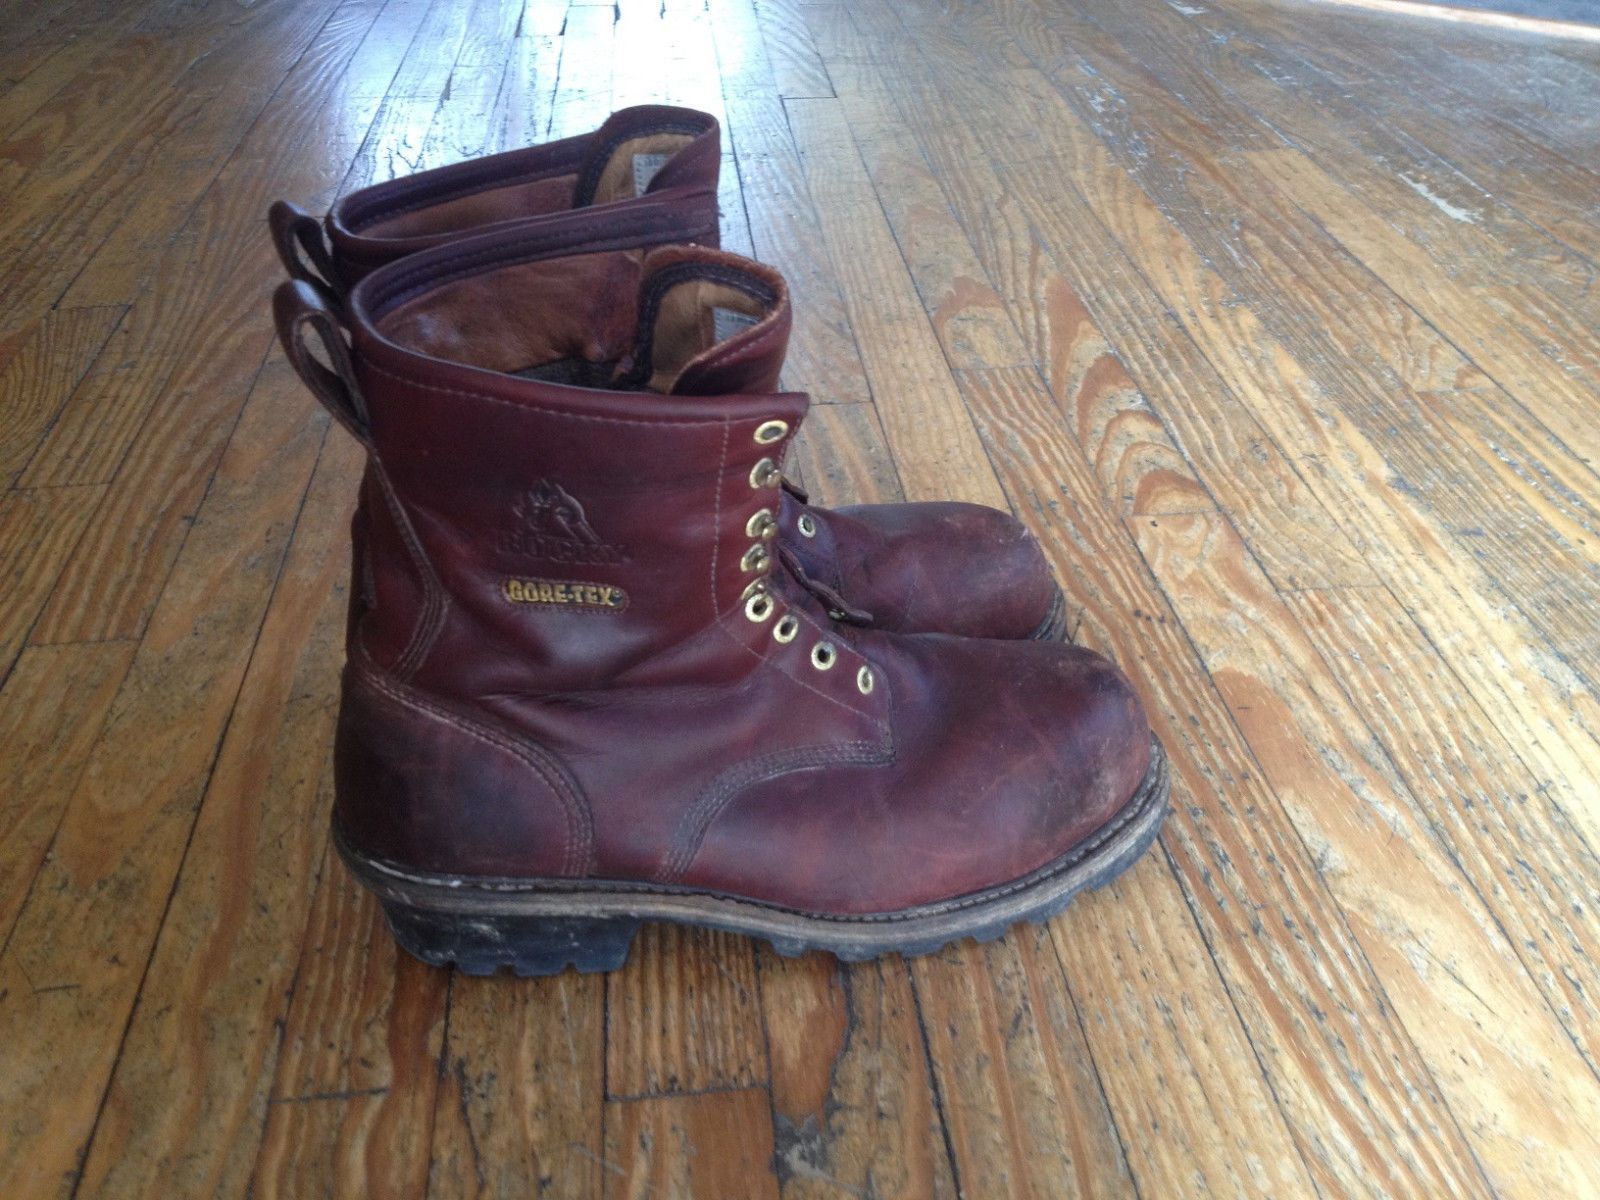 Work & Safety Leather Medium (D, M) ROCKY Boots for Men   eBay